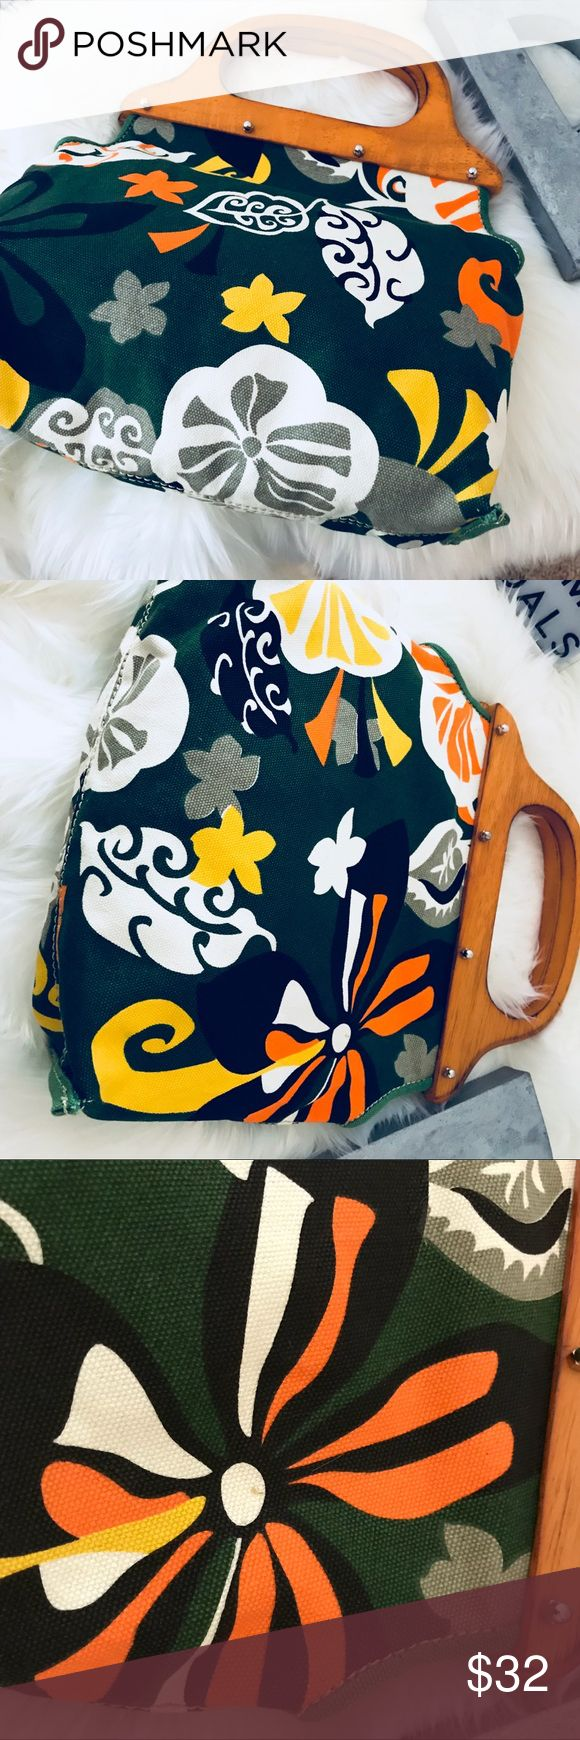 """J Crew floral pattern wooden handle purse. Women's J. Crew Green Yellow size 12"""" x 8.5""""  rare  vintage-style geometric floral J. Crew Bags Totes"""